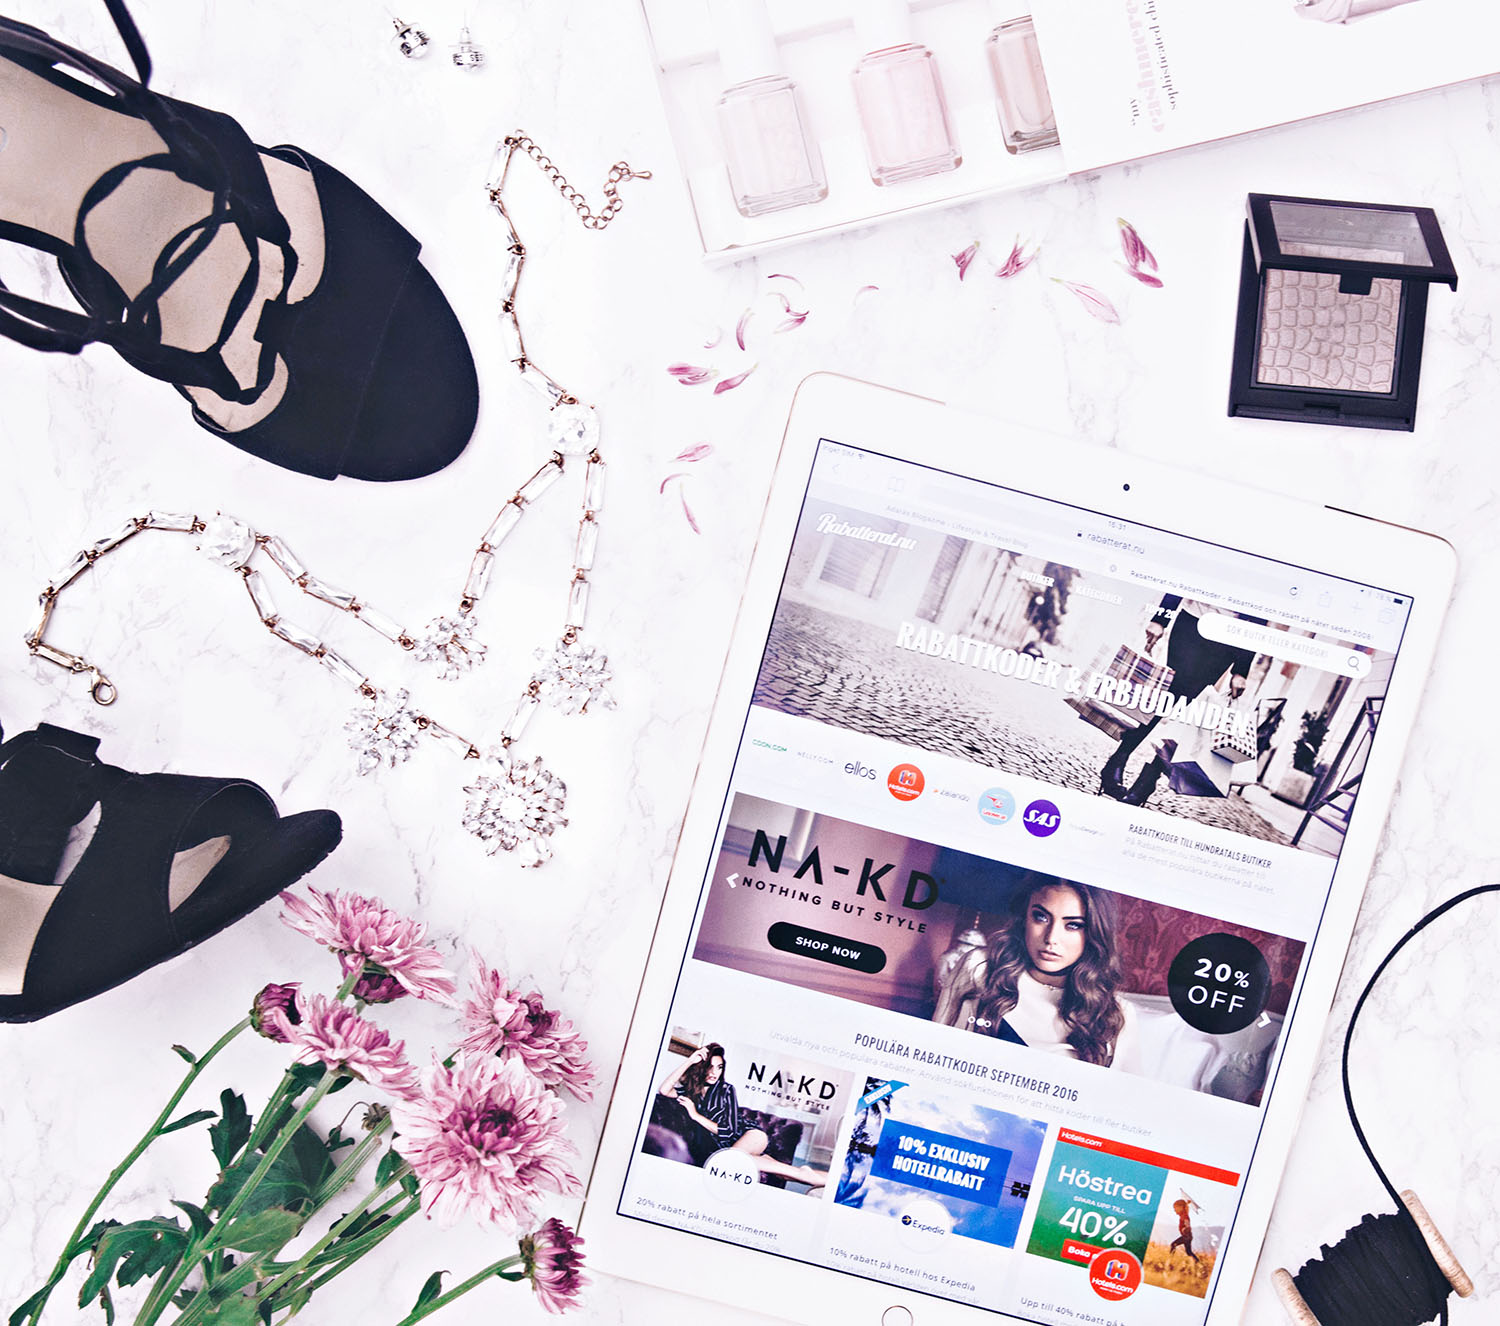 Flatlay with iPad Pro & Rabatterat.nu, jewelry, shoes & flowers